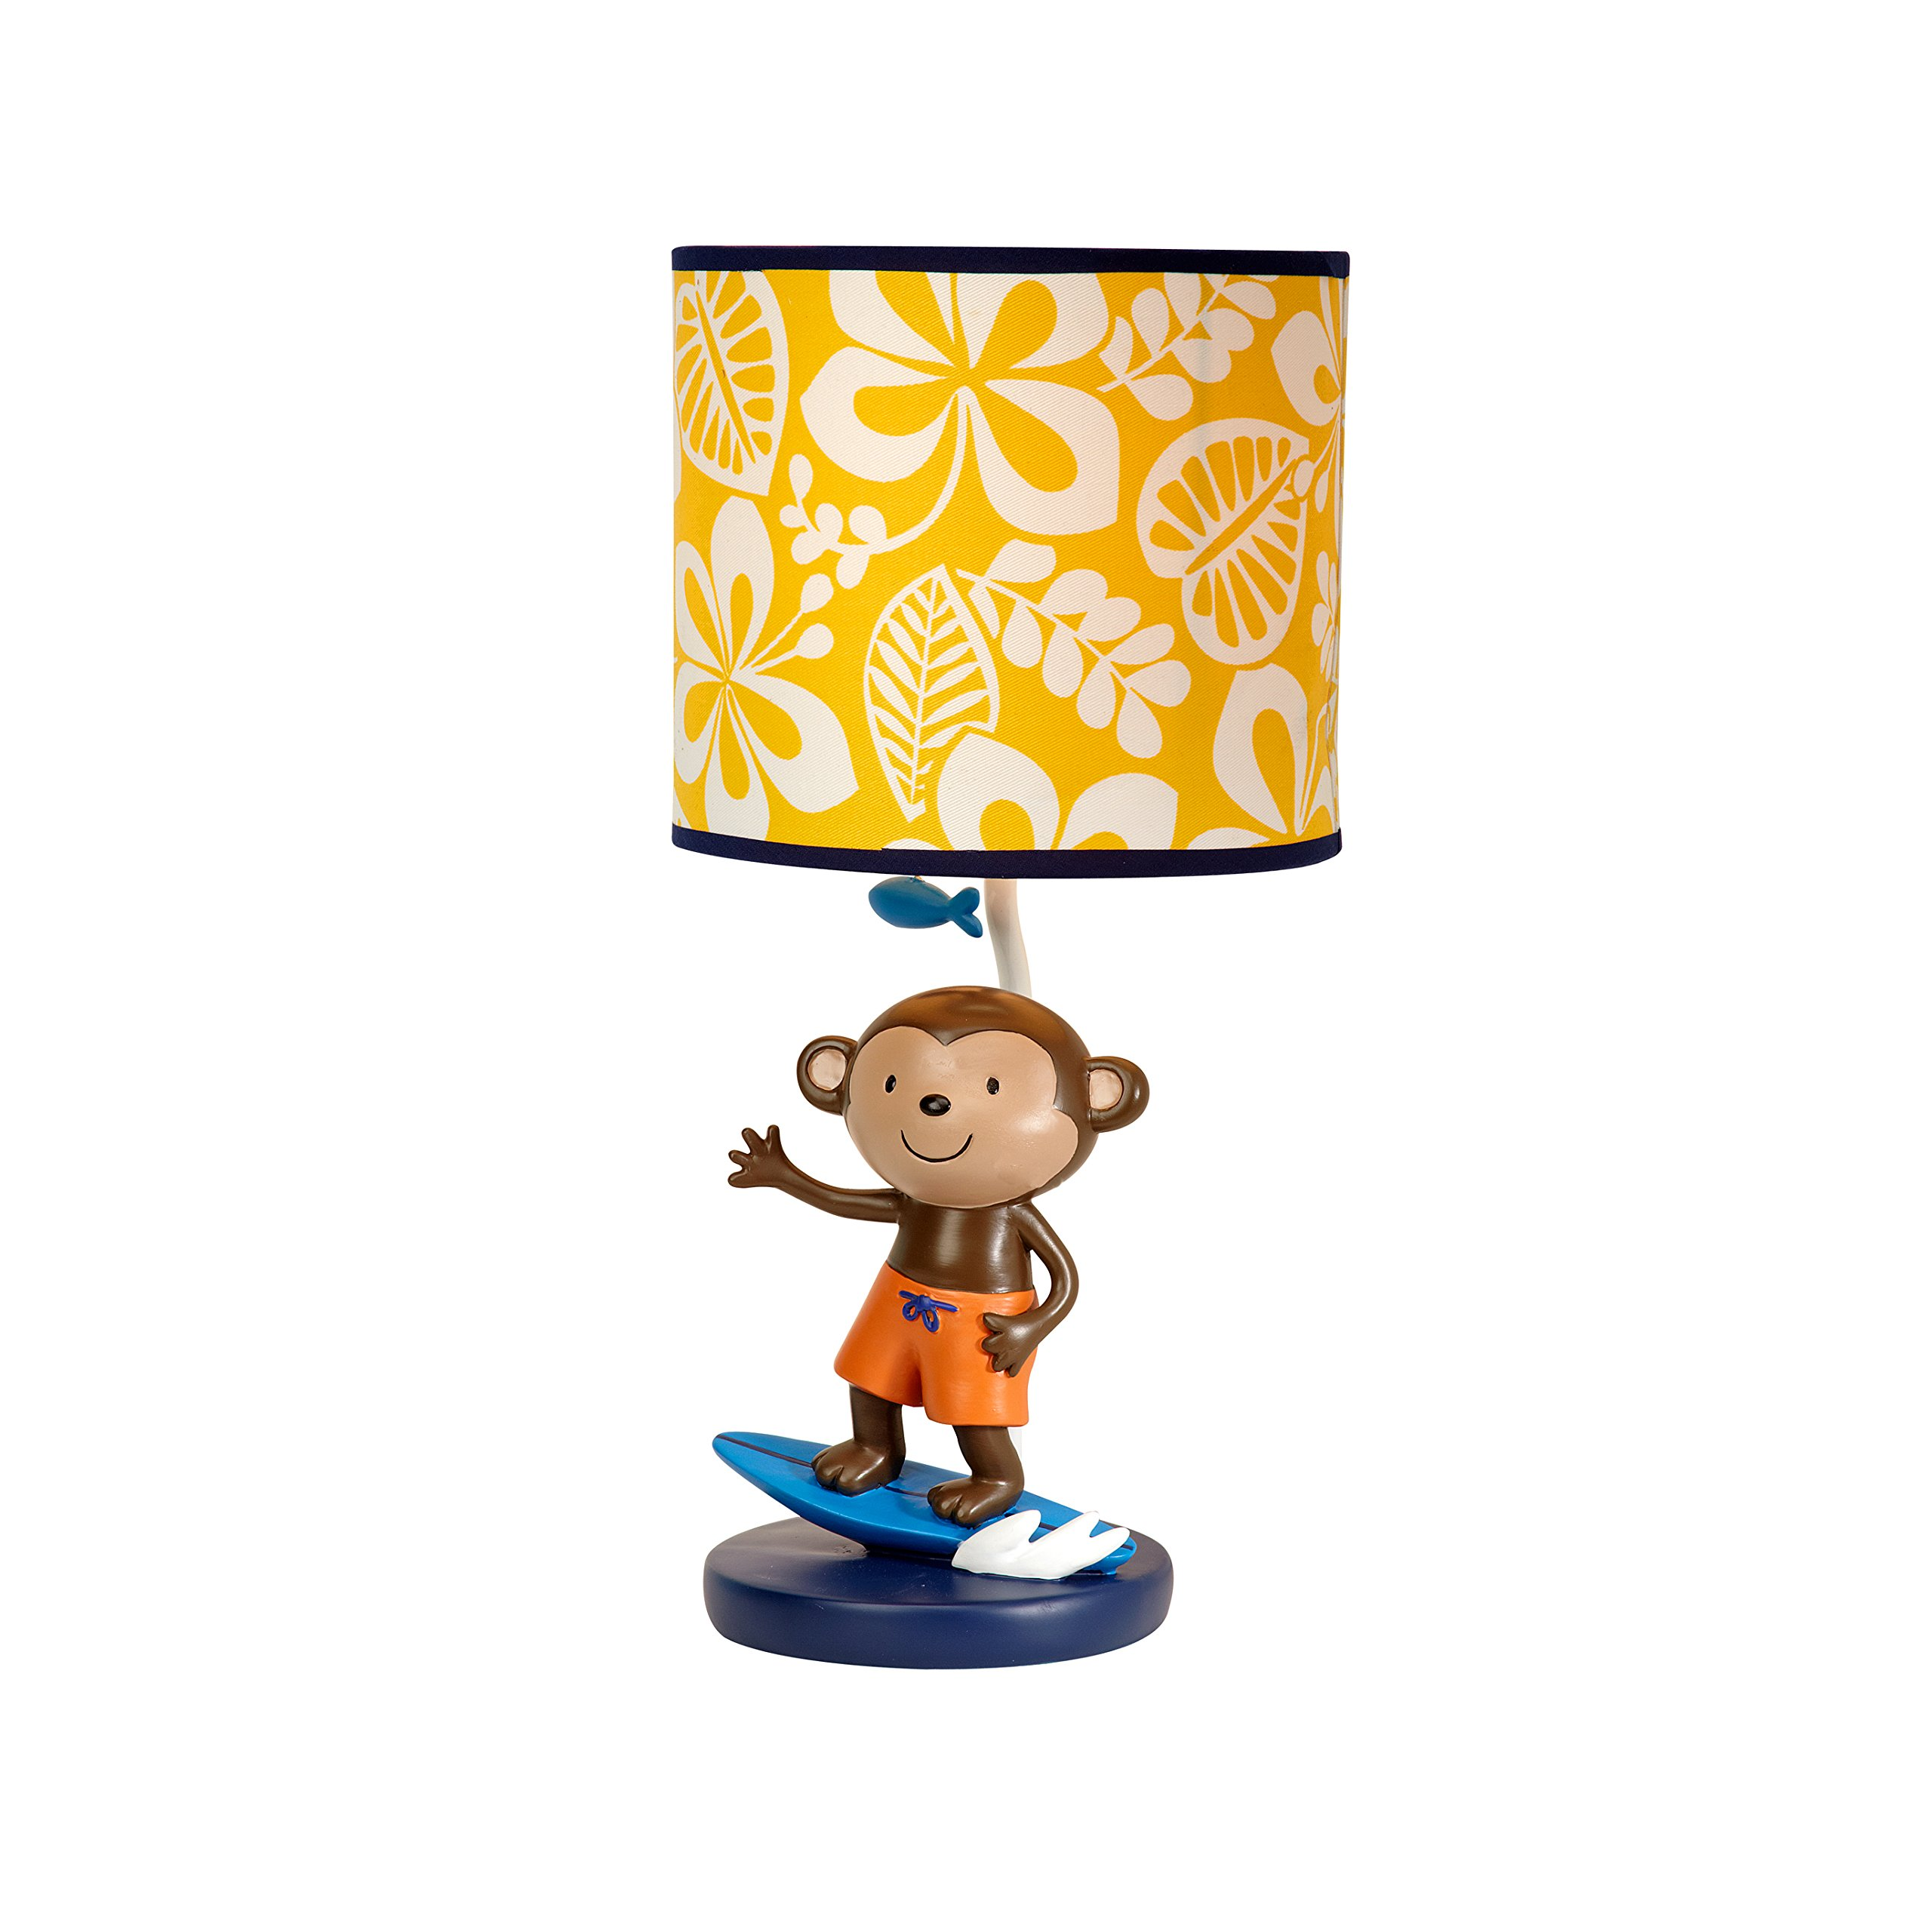 Carter's Laguna Collection Lamp and Shade by Carter's